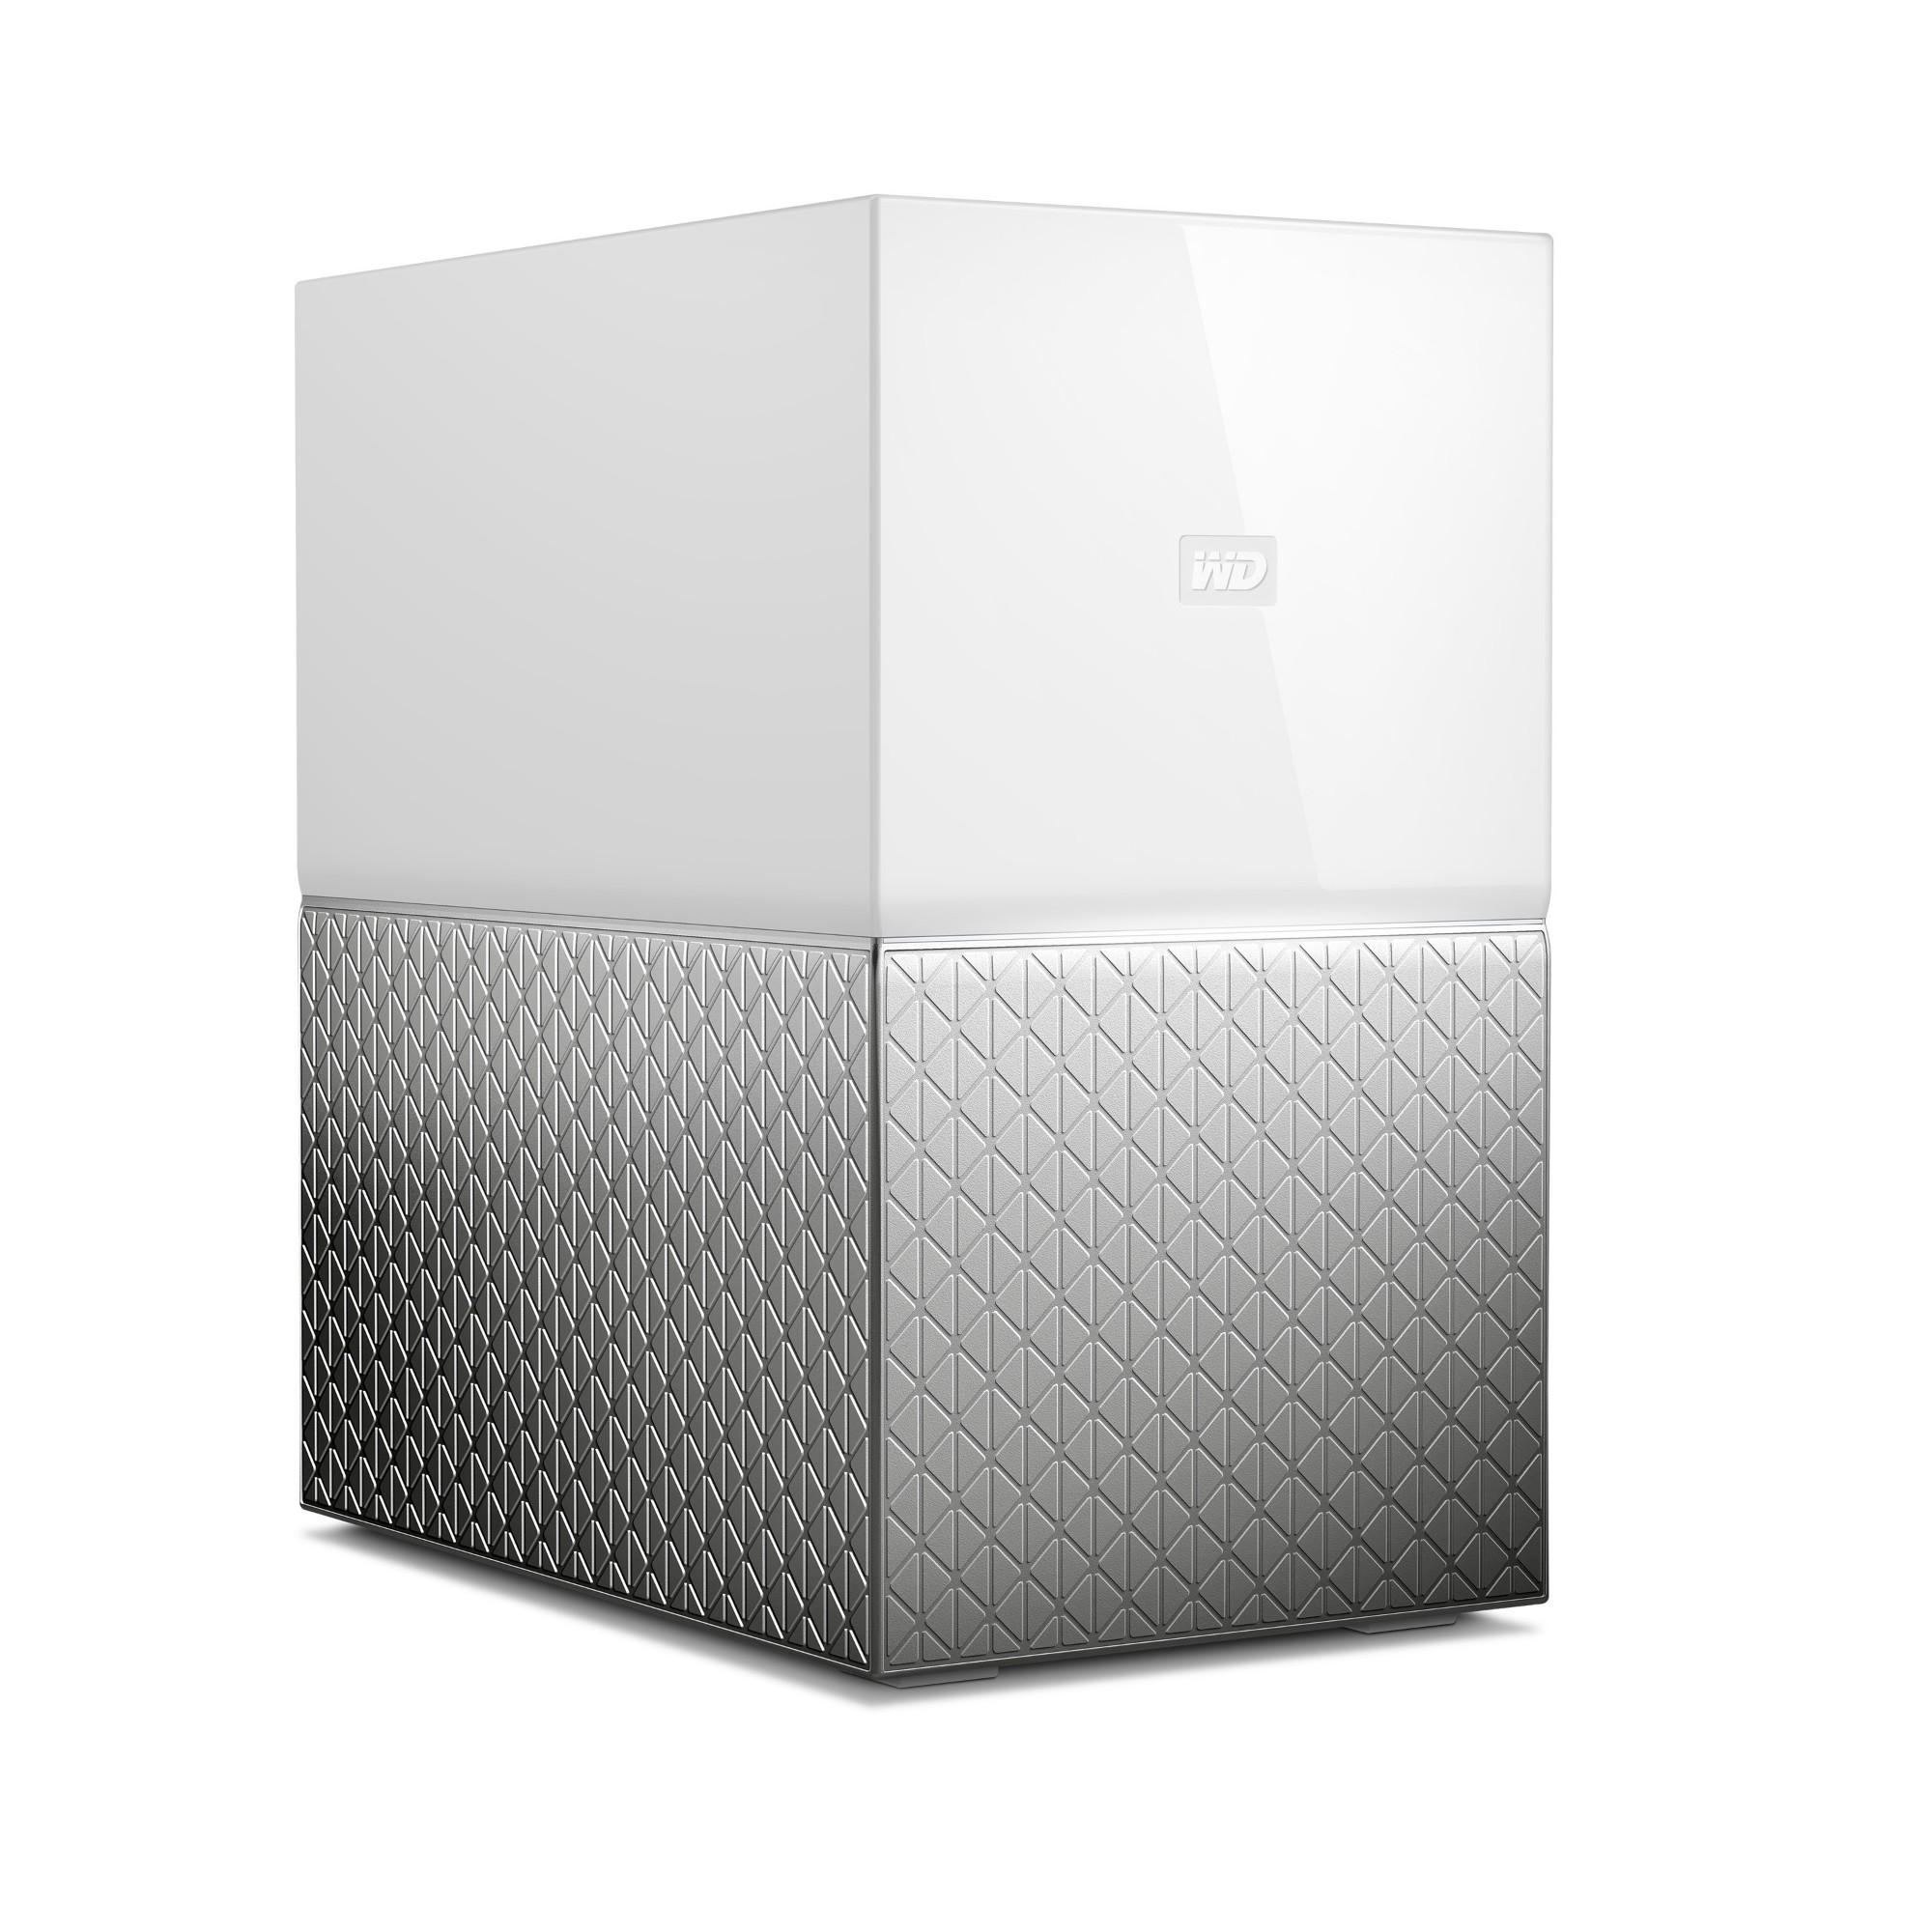 WESTERN DIGITAL MY CLOUD HOME DUO 8TB ETHERNET LAN WHITE PERSONAL STORAGE DEVICE